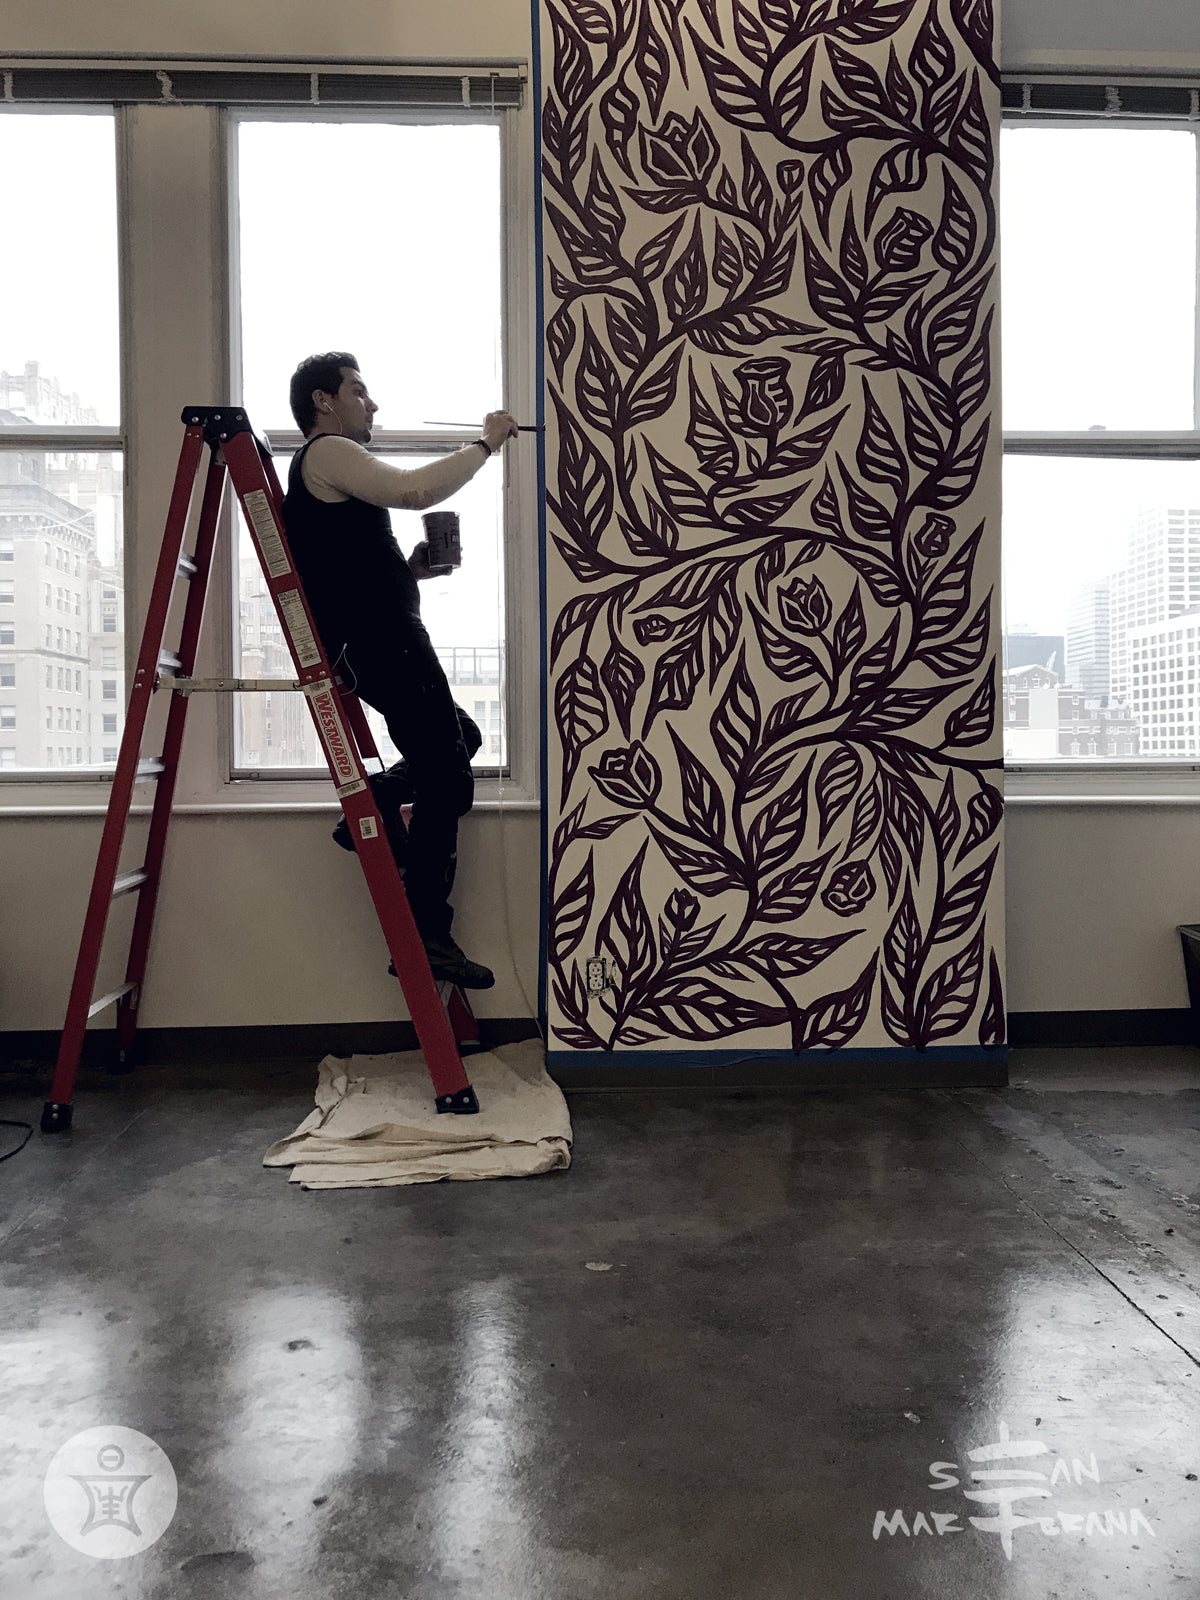 Sean Martorana painting and installing a Flourish Mural in Scribewise Philadelphia, PA